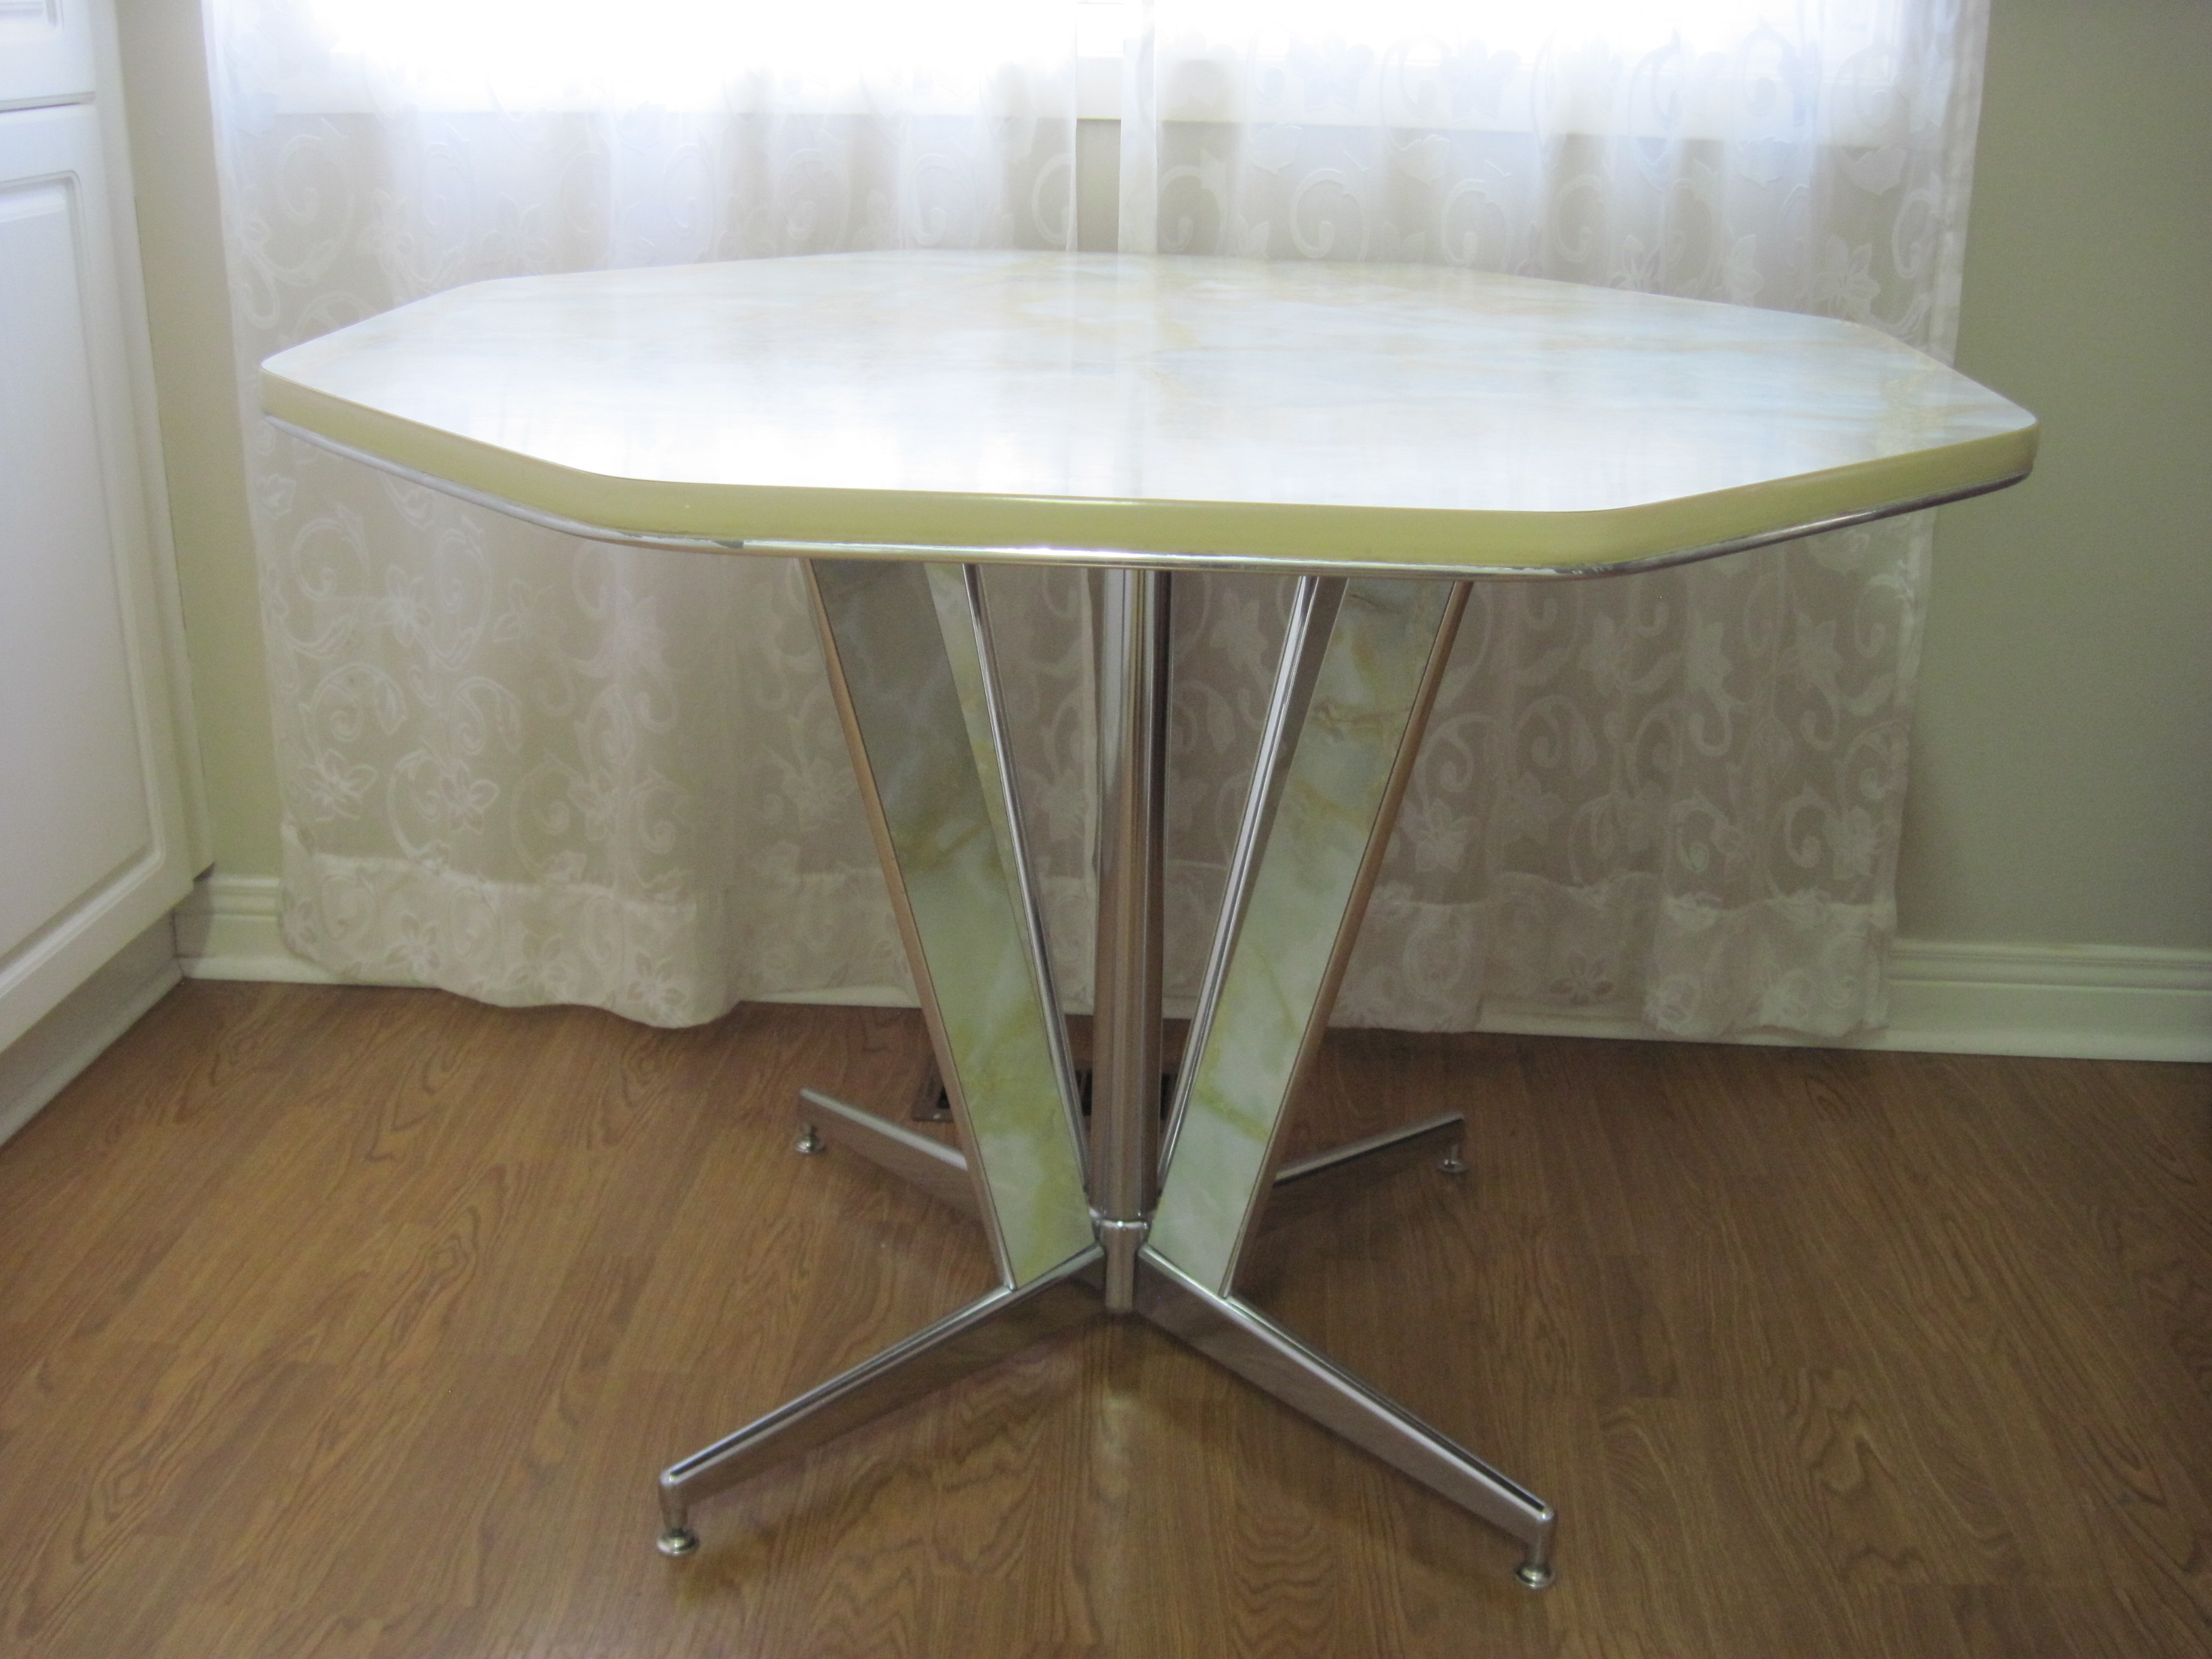 retro dining sets s kitchen table IMG IMG s kitchen